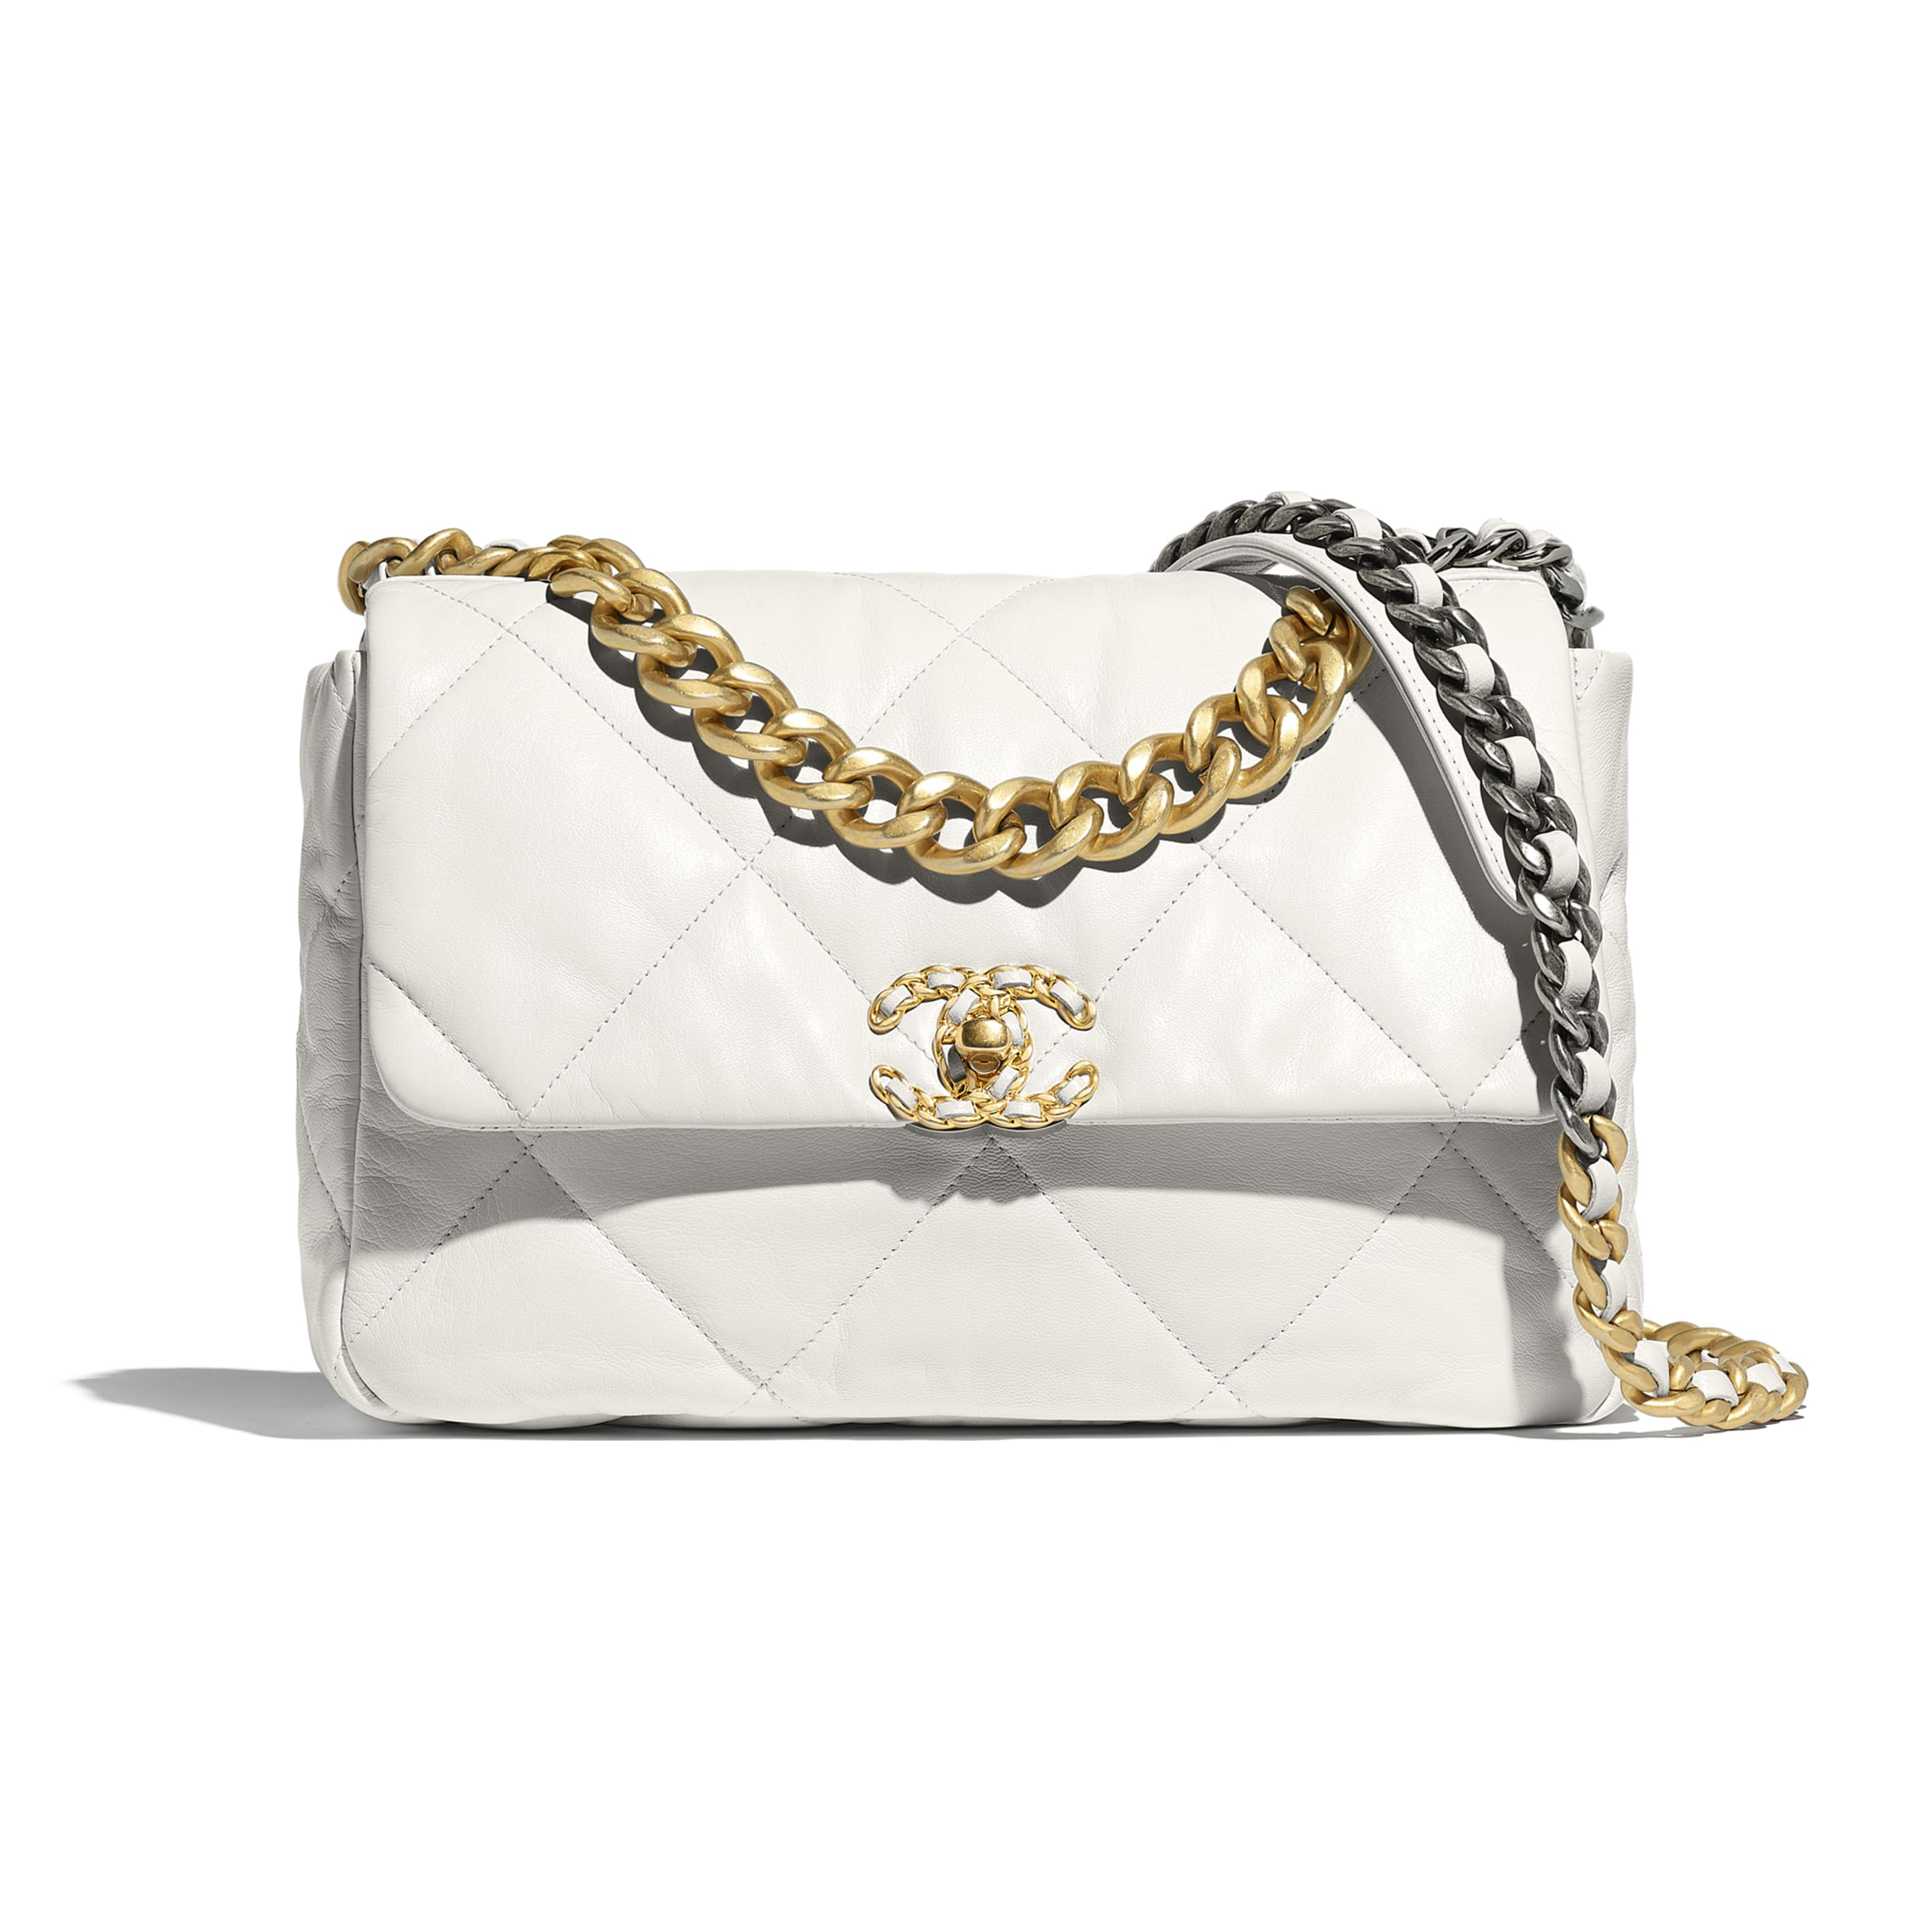 CHANEL 19 Large Flap Bag - White - Goatskin, Gold-Tone, Silver-Tone & Ruthenium-Finish Metal - Default view - see standard sized version